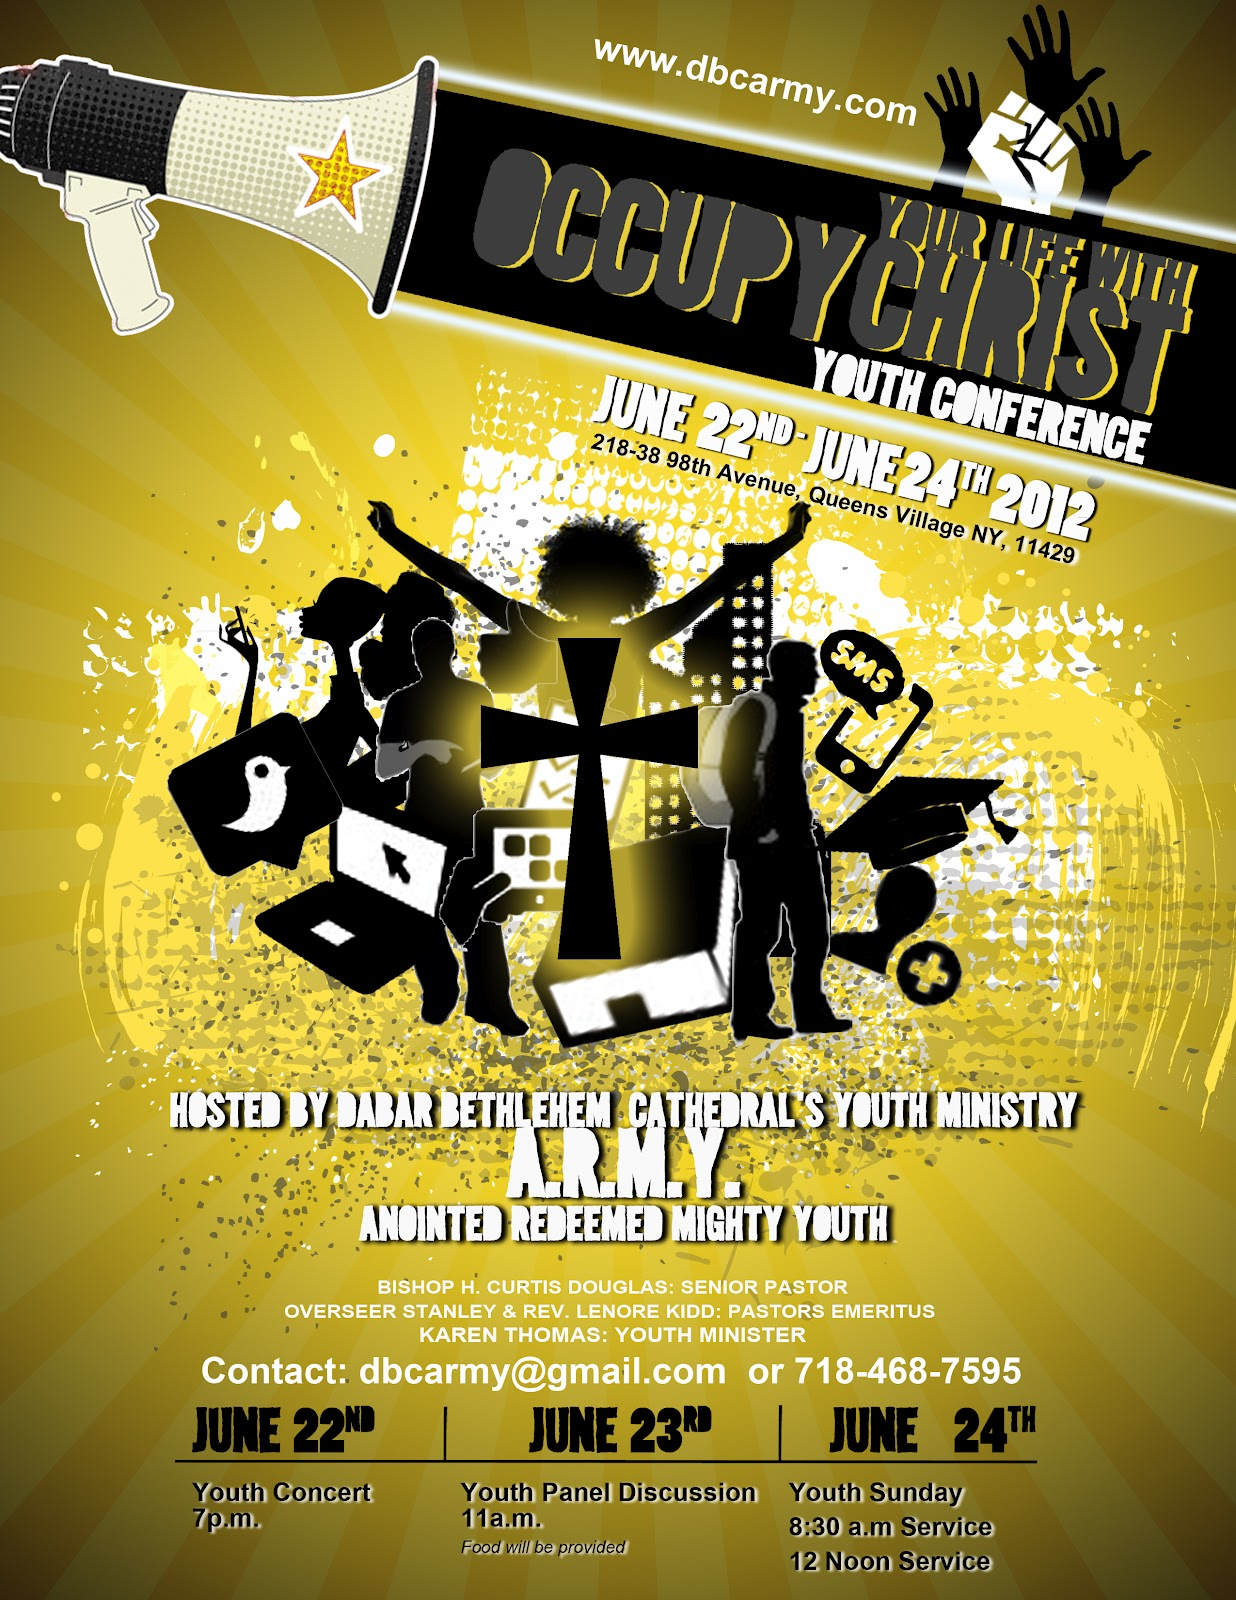 a r m y youth department occupy your life christ essay  2012 a r m y youth department occupy your life christ essay contest